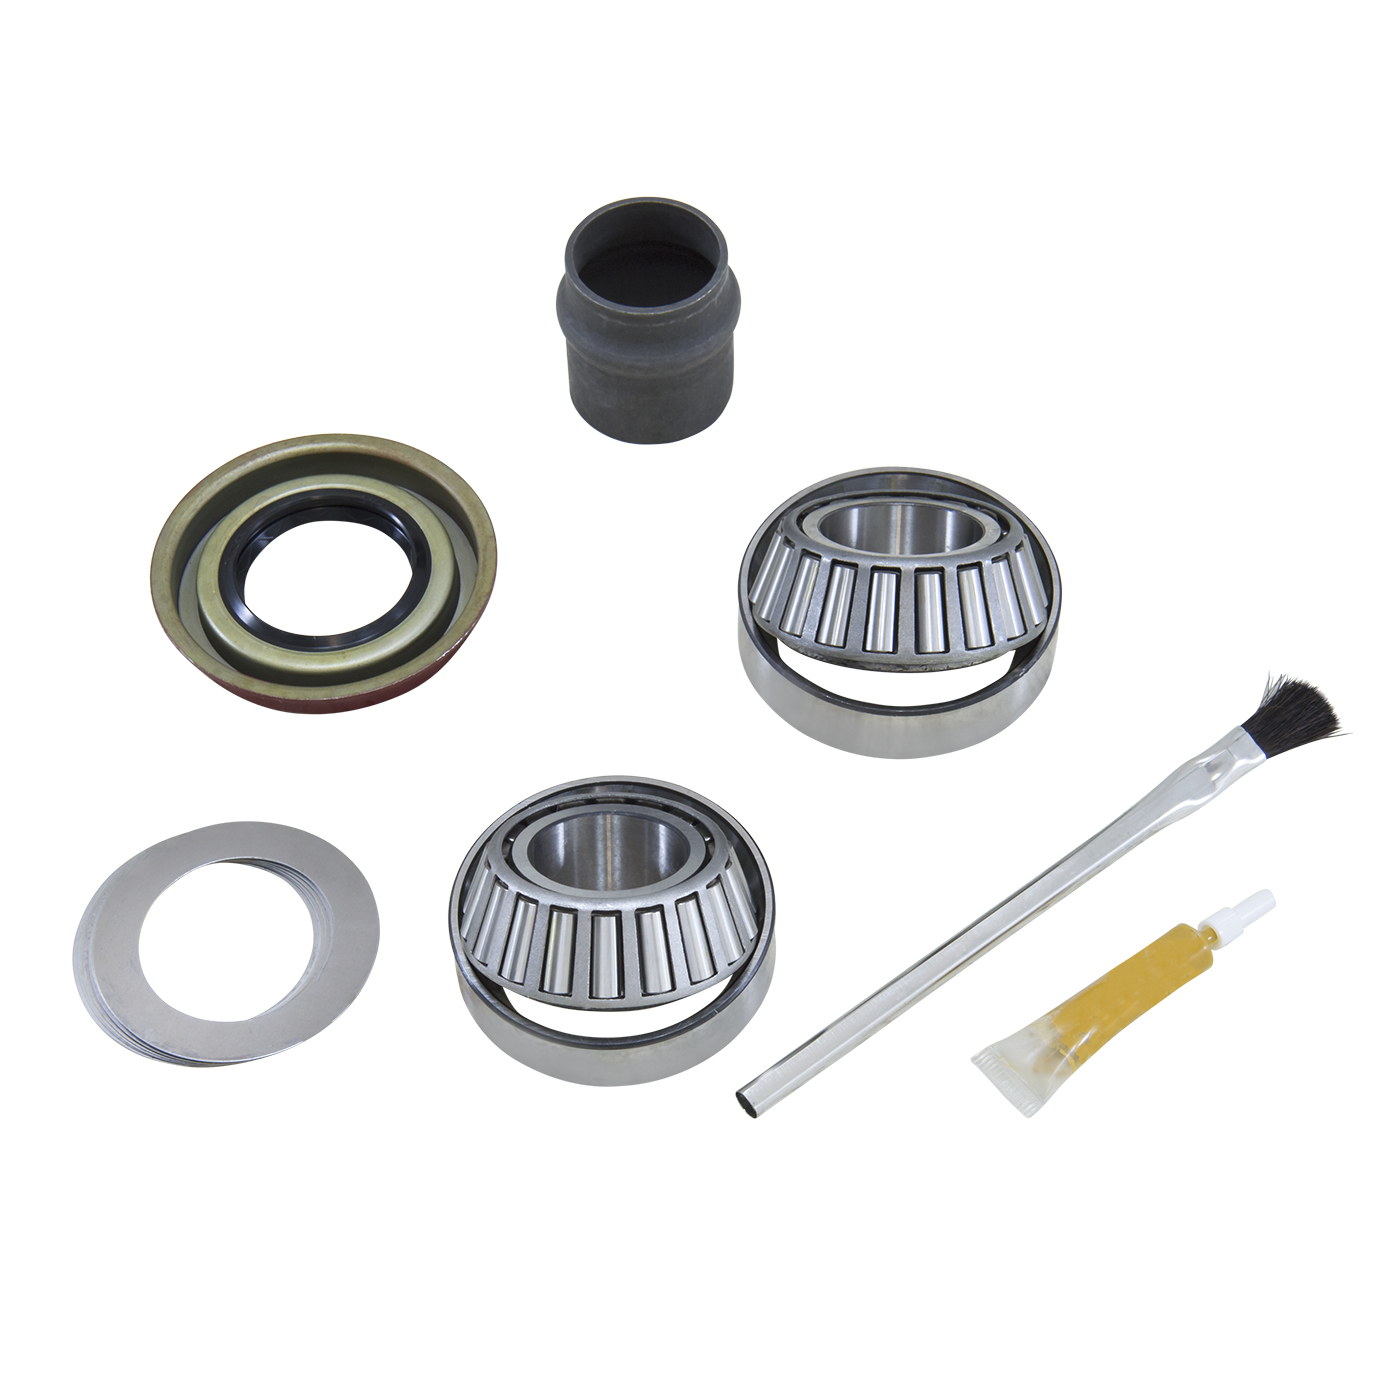 PK GM8.25IFS-A - Yukon Pinion install kit for GM 8.25